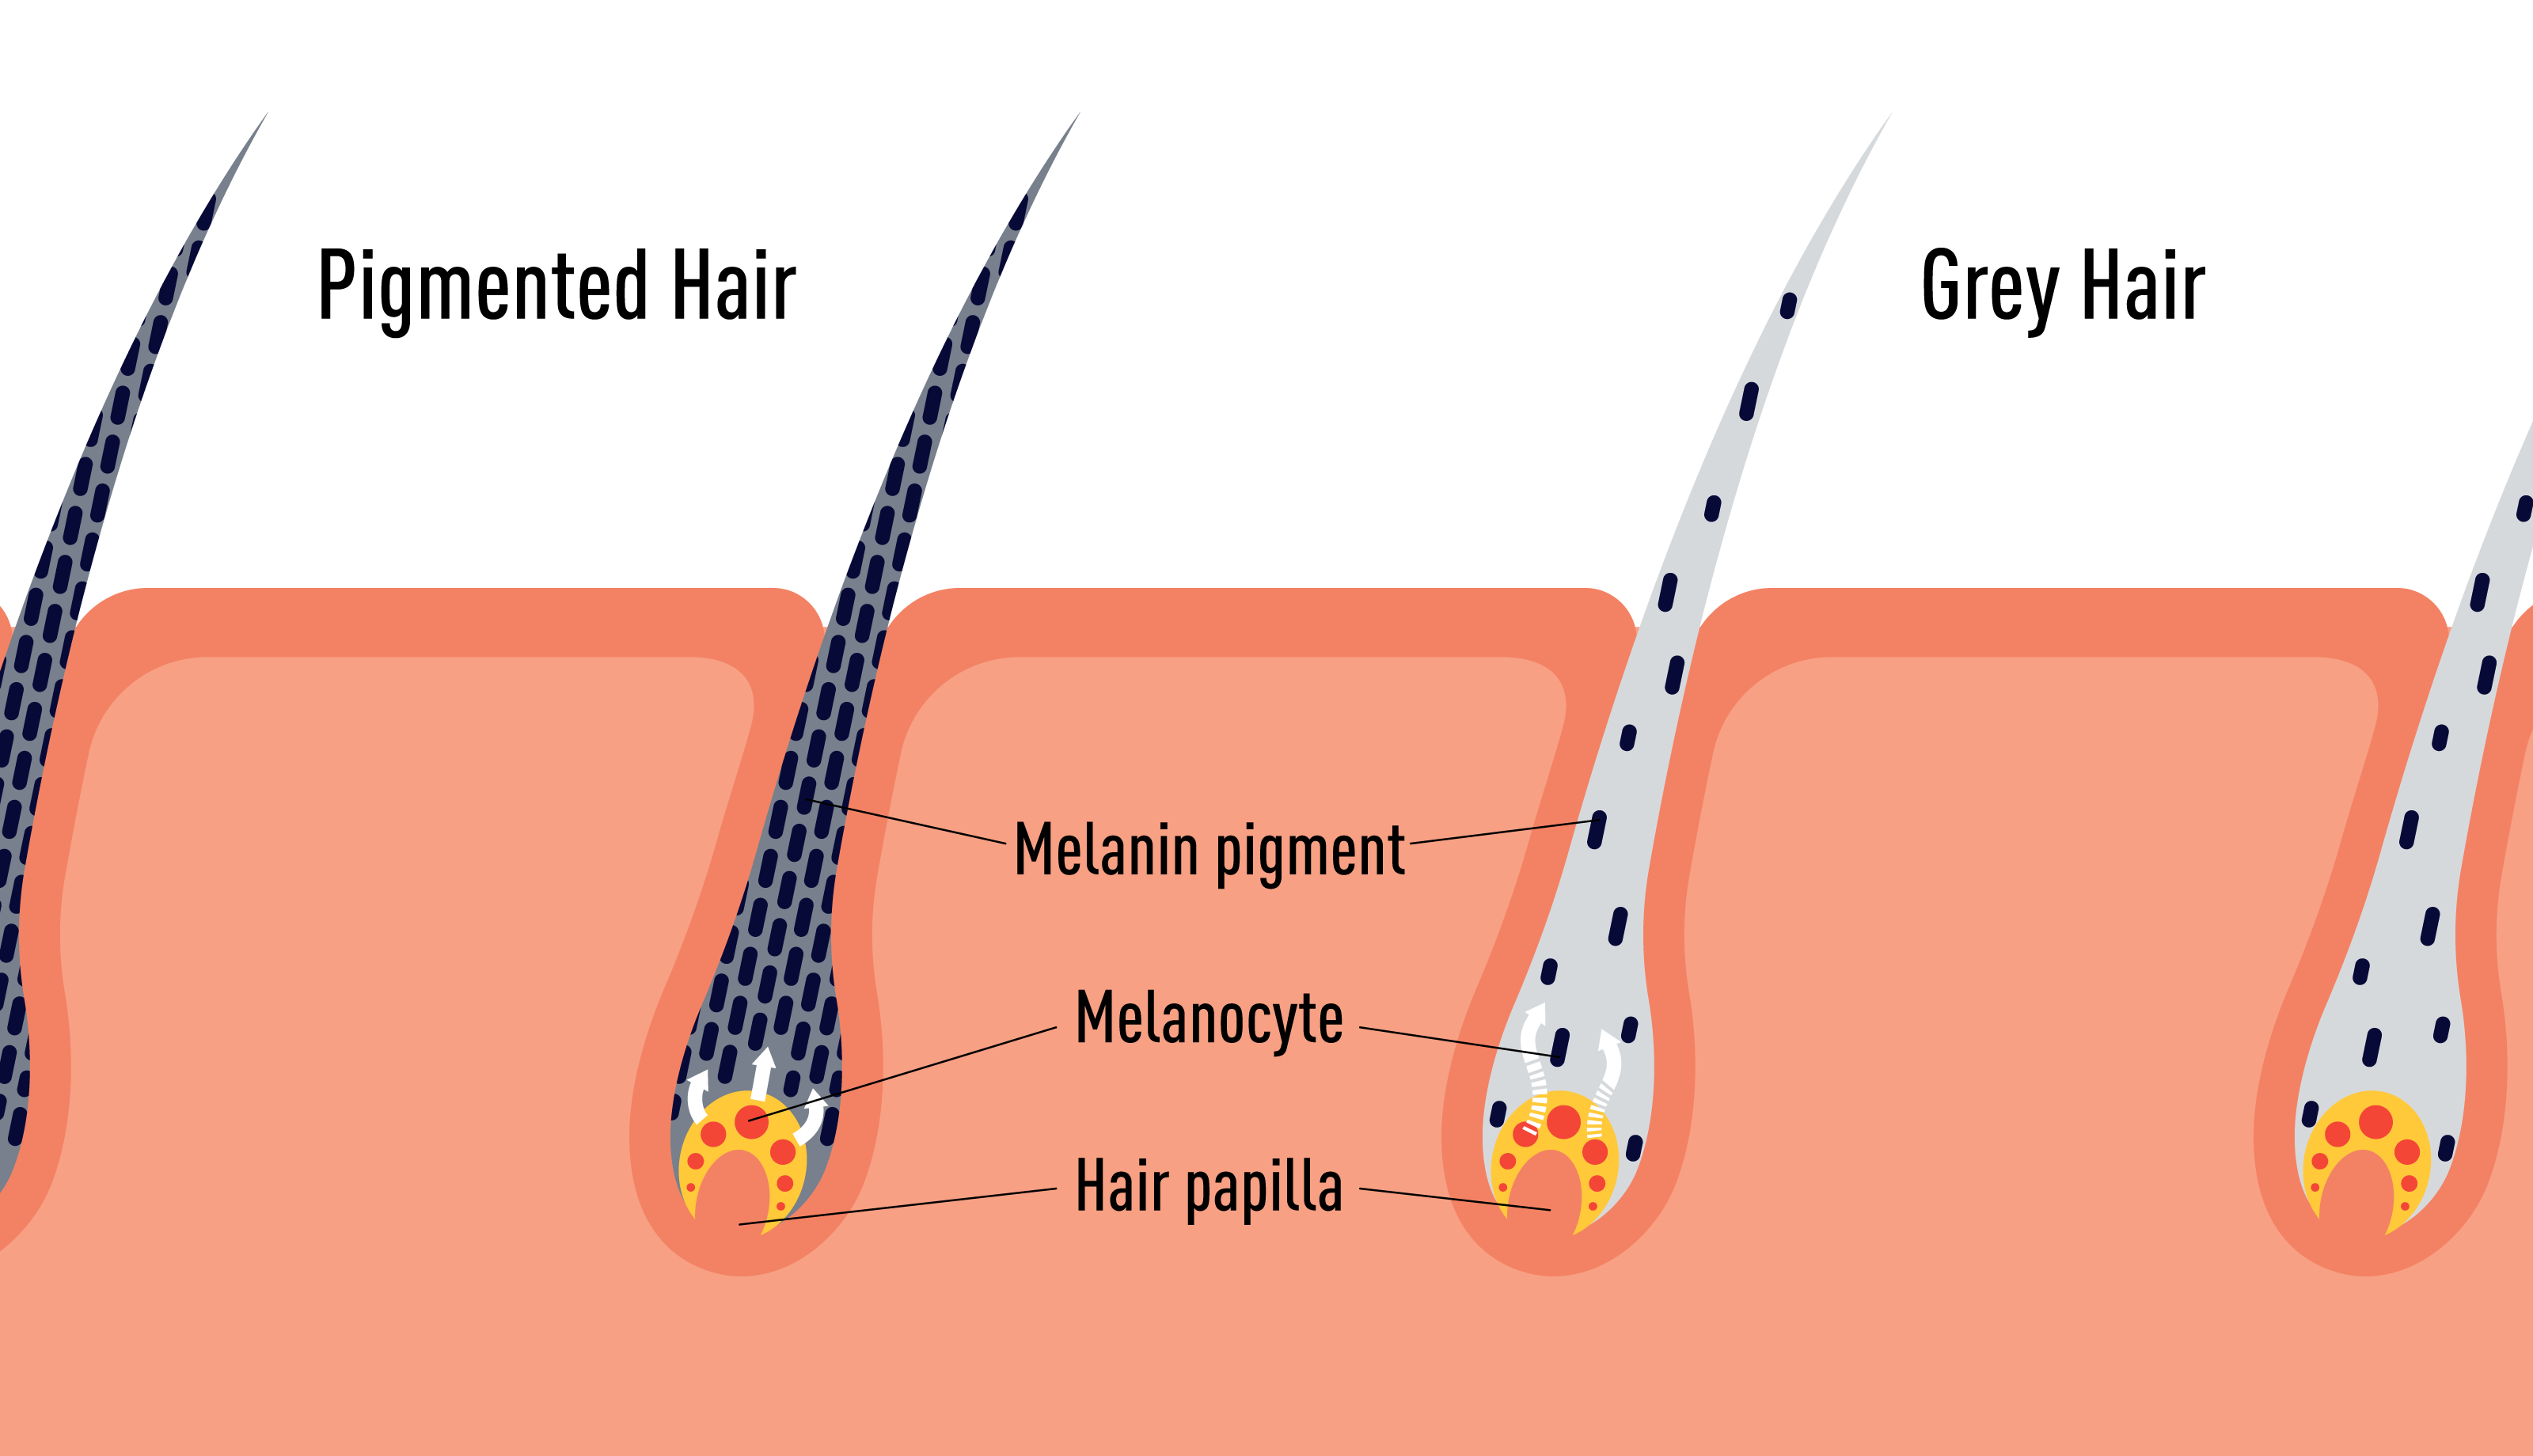 Grey hair is caused by decreased melanin Atlas Biomed illustration